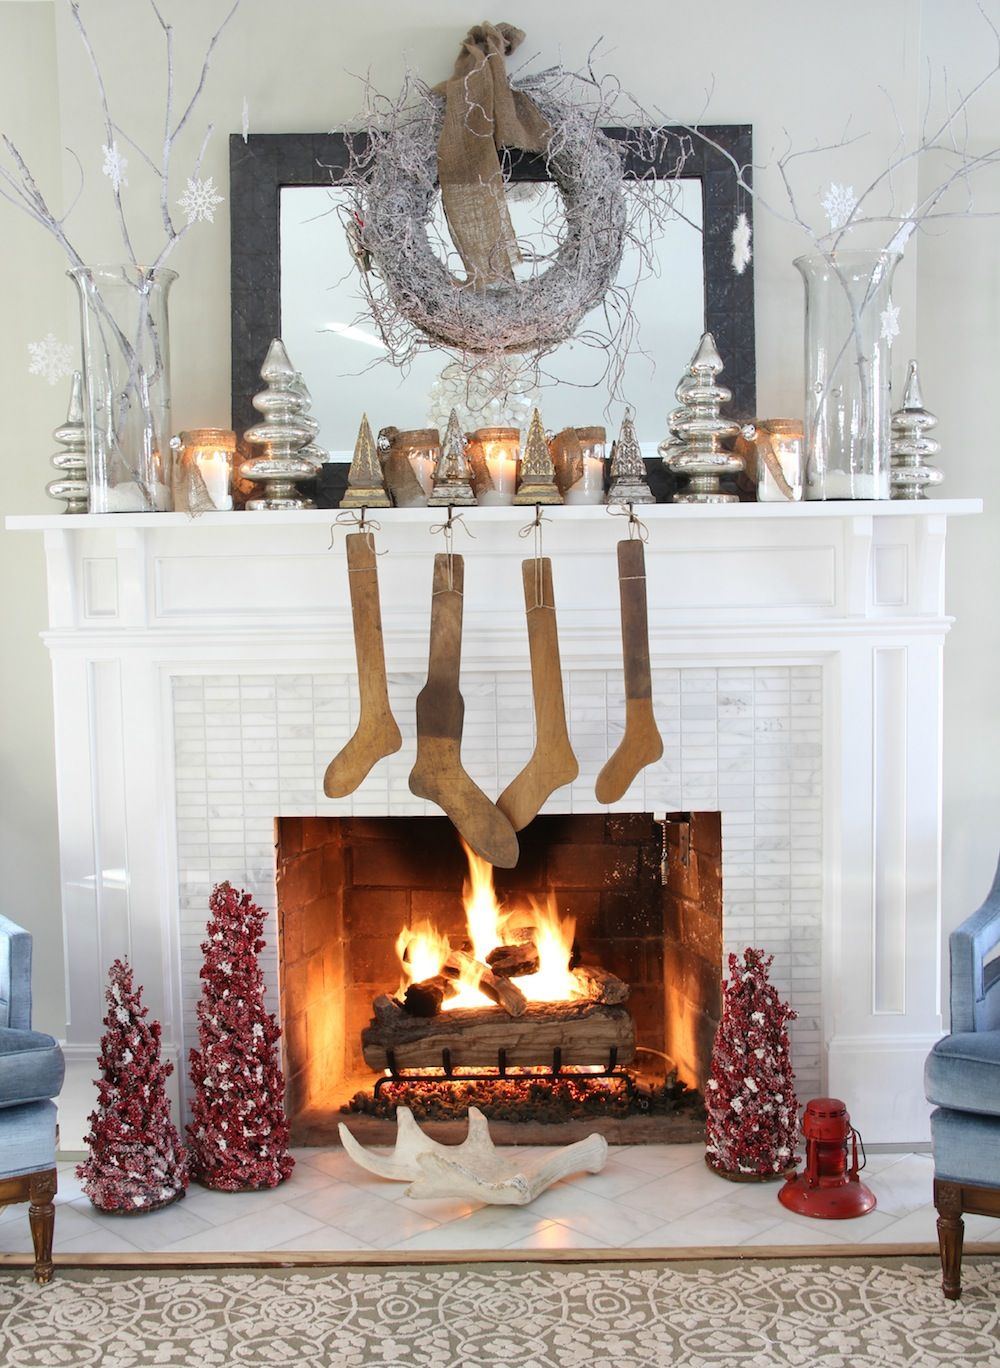 Large white christmas ornaments - Retro Ideas Decoration Christmas Having White Walls Fireplace Hanging Brown Classical Socks And Cool Silver Ornaments